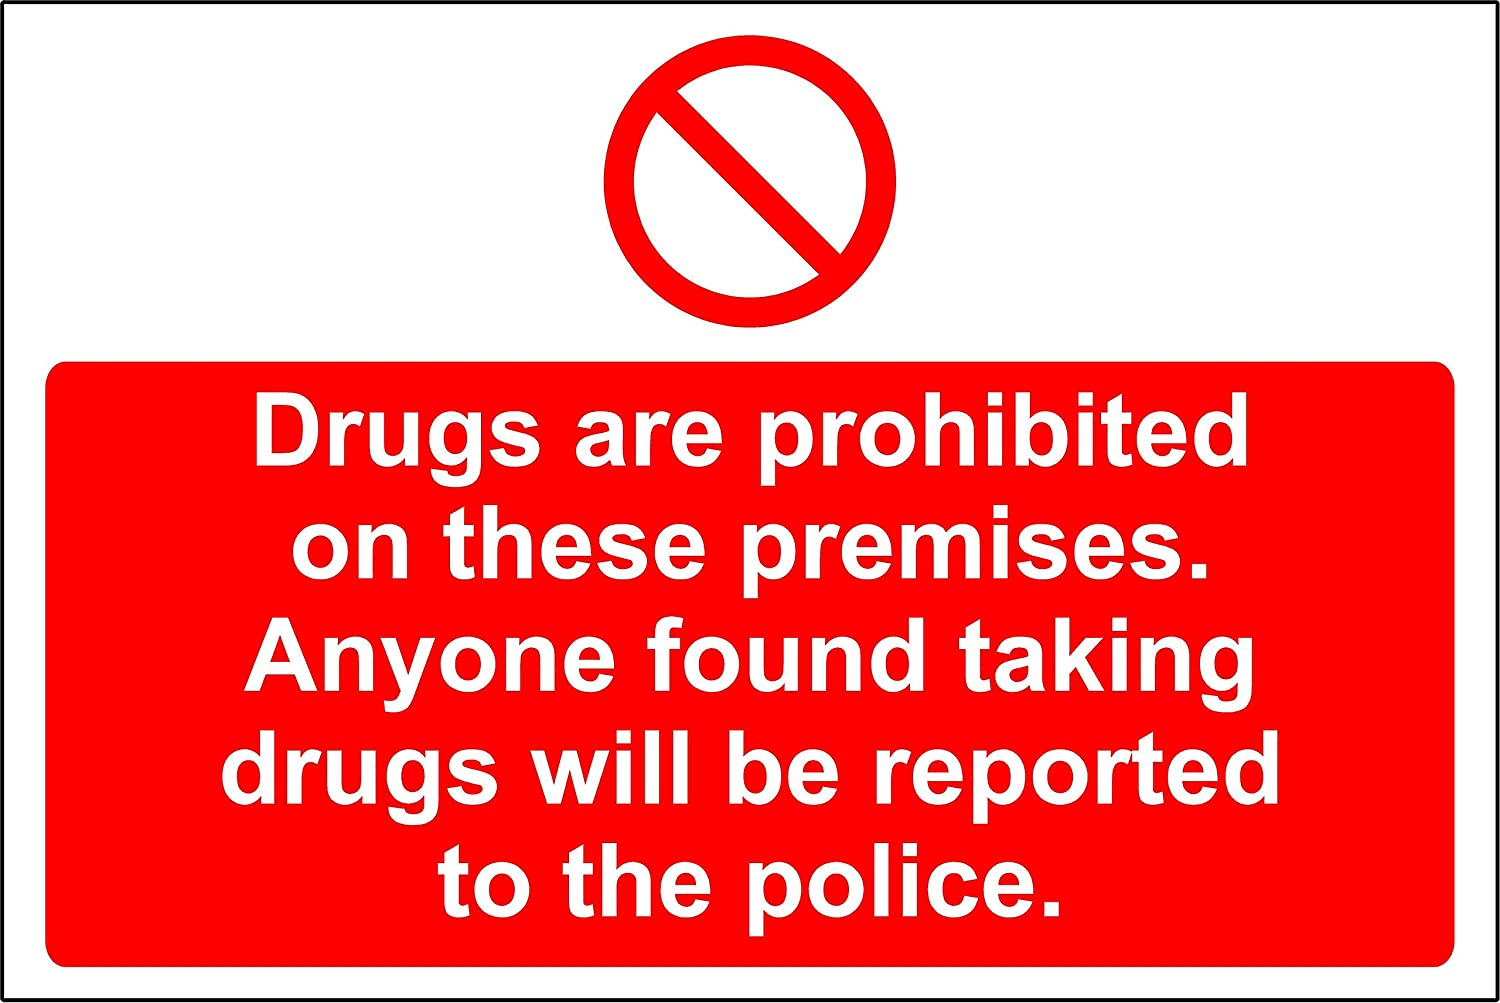 Anyone found taking drugs sign Drugs are prohibited on these premises